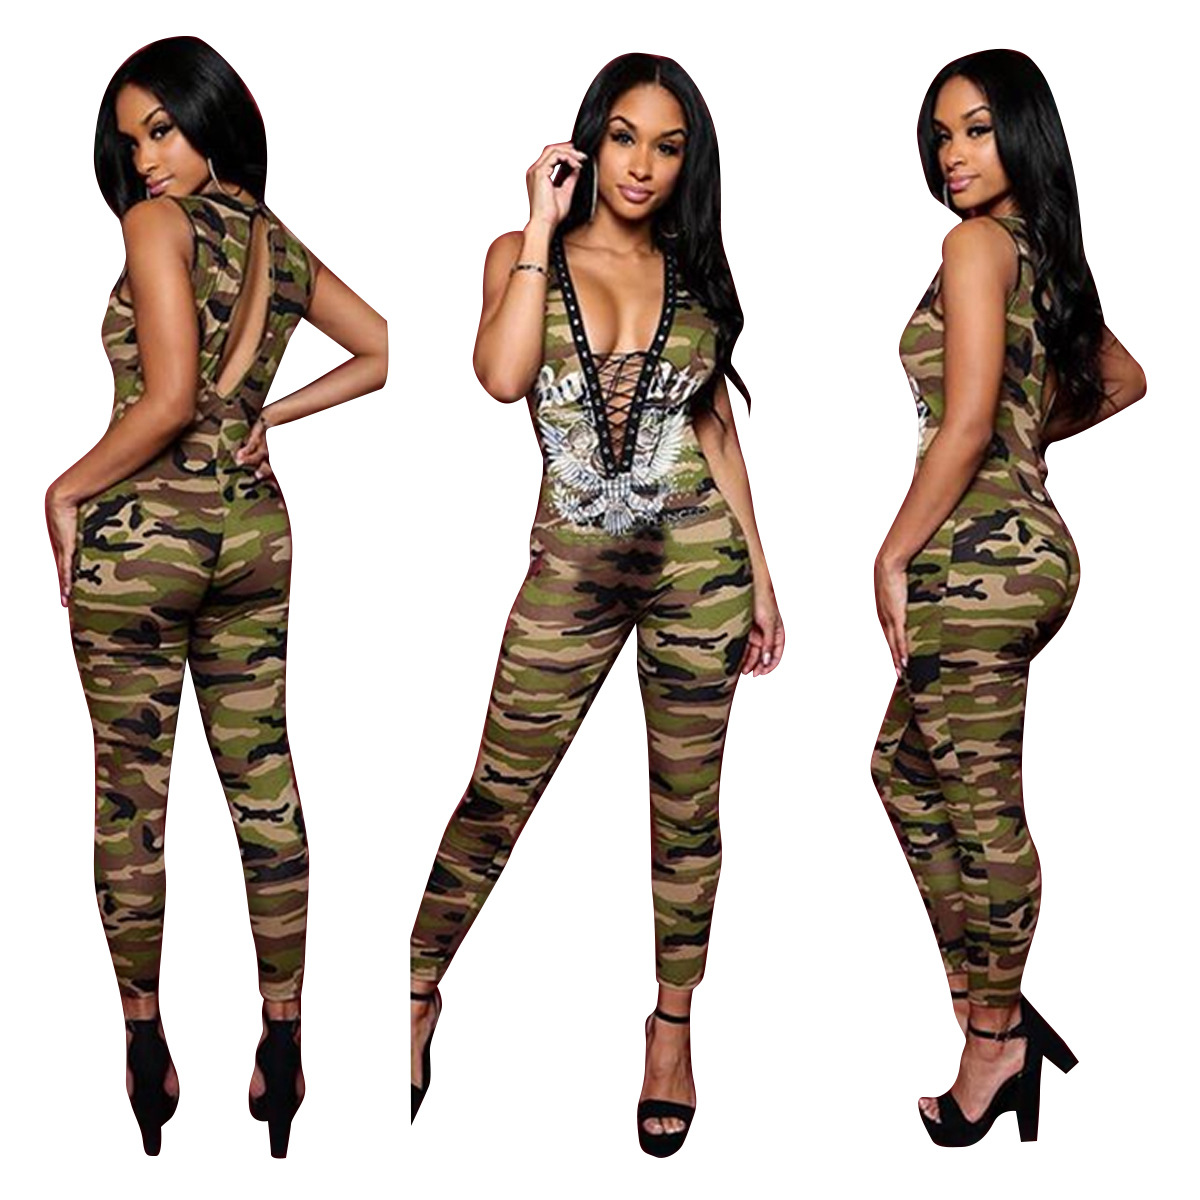 plus size jumpsuits for women 2018 camouflage overalls New Women Ladies Clubwear Summer Playsuit Bodycon Bodys Mujer Combinaison